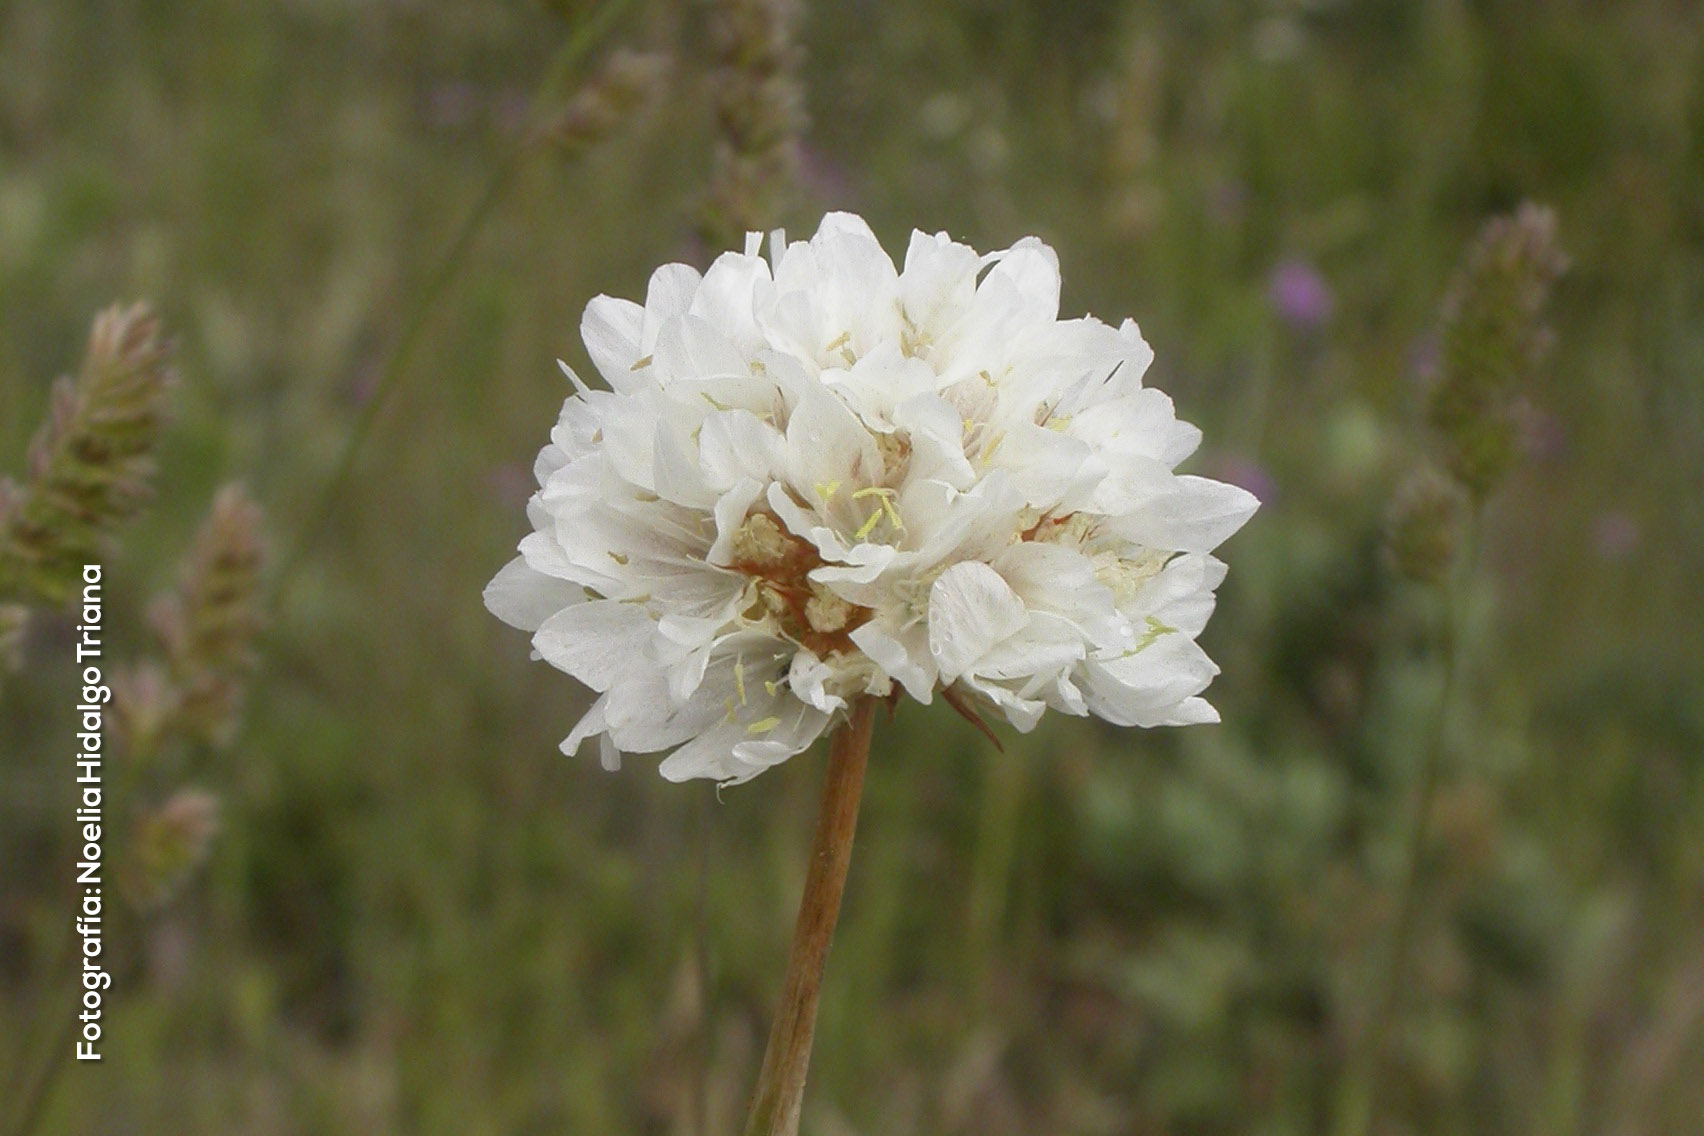 Armeria villosa subsp. carratracensis